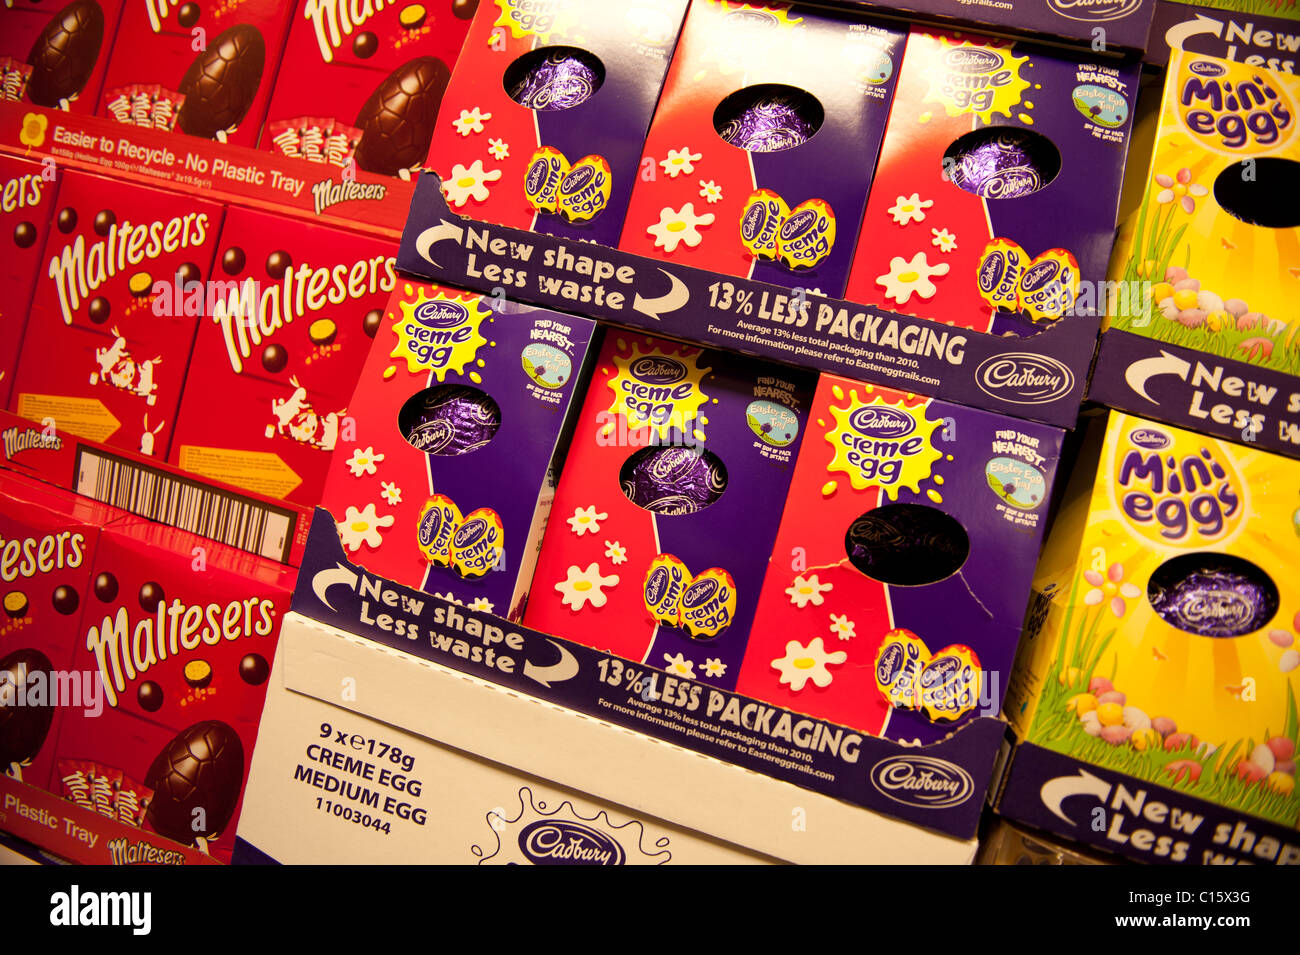 chocolate easter eggs on sale in shop, UK Stock Photo - Alamy